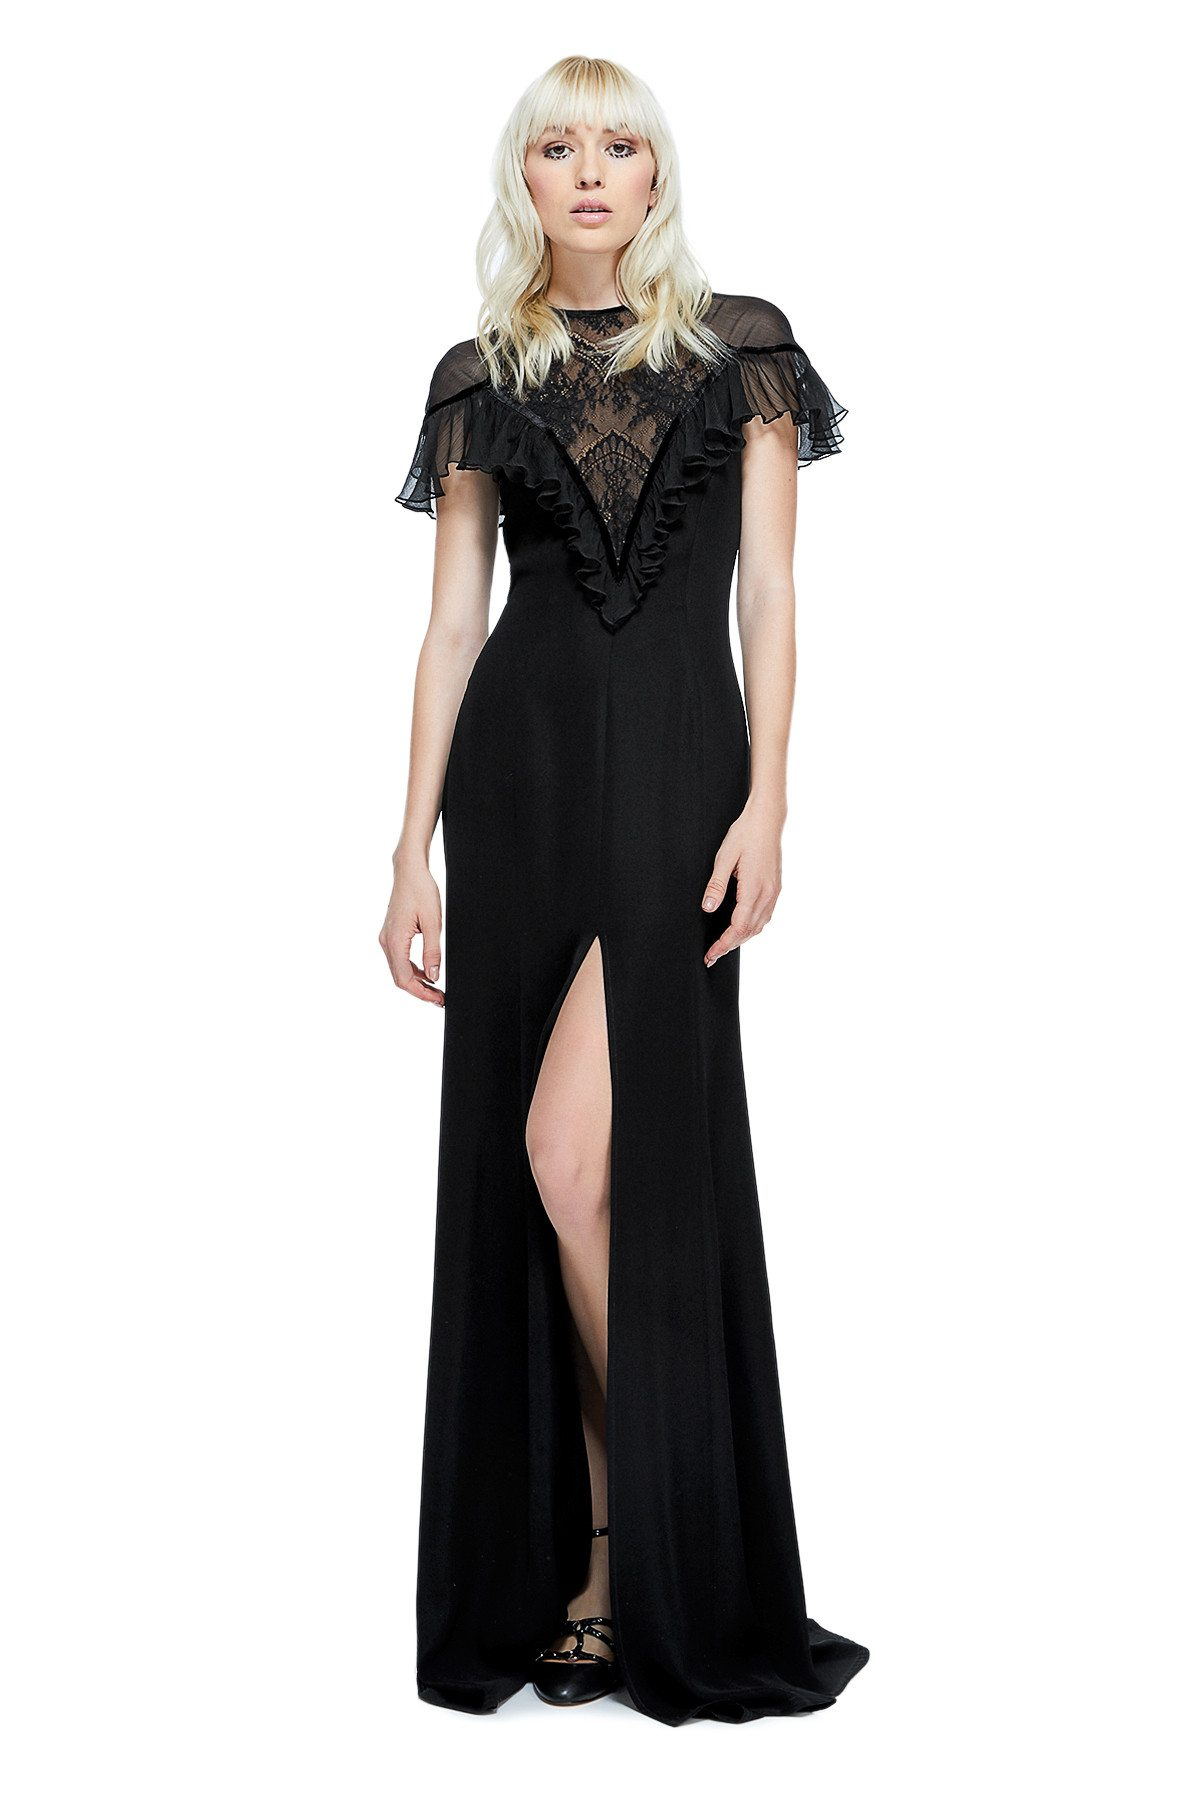 723ed4baa3d Platinum blonde model posing in black Victorian inspired sheath with lace  plunge neckline Tadashi Shoji gown